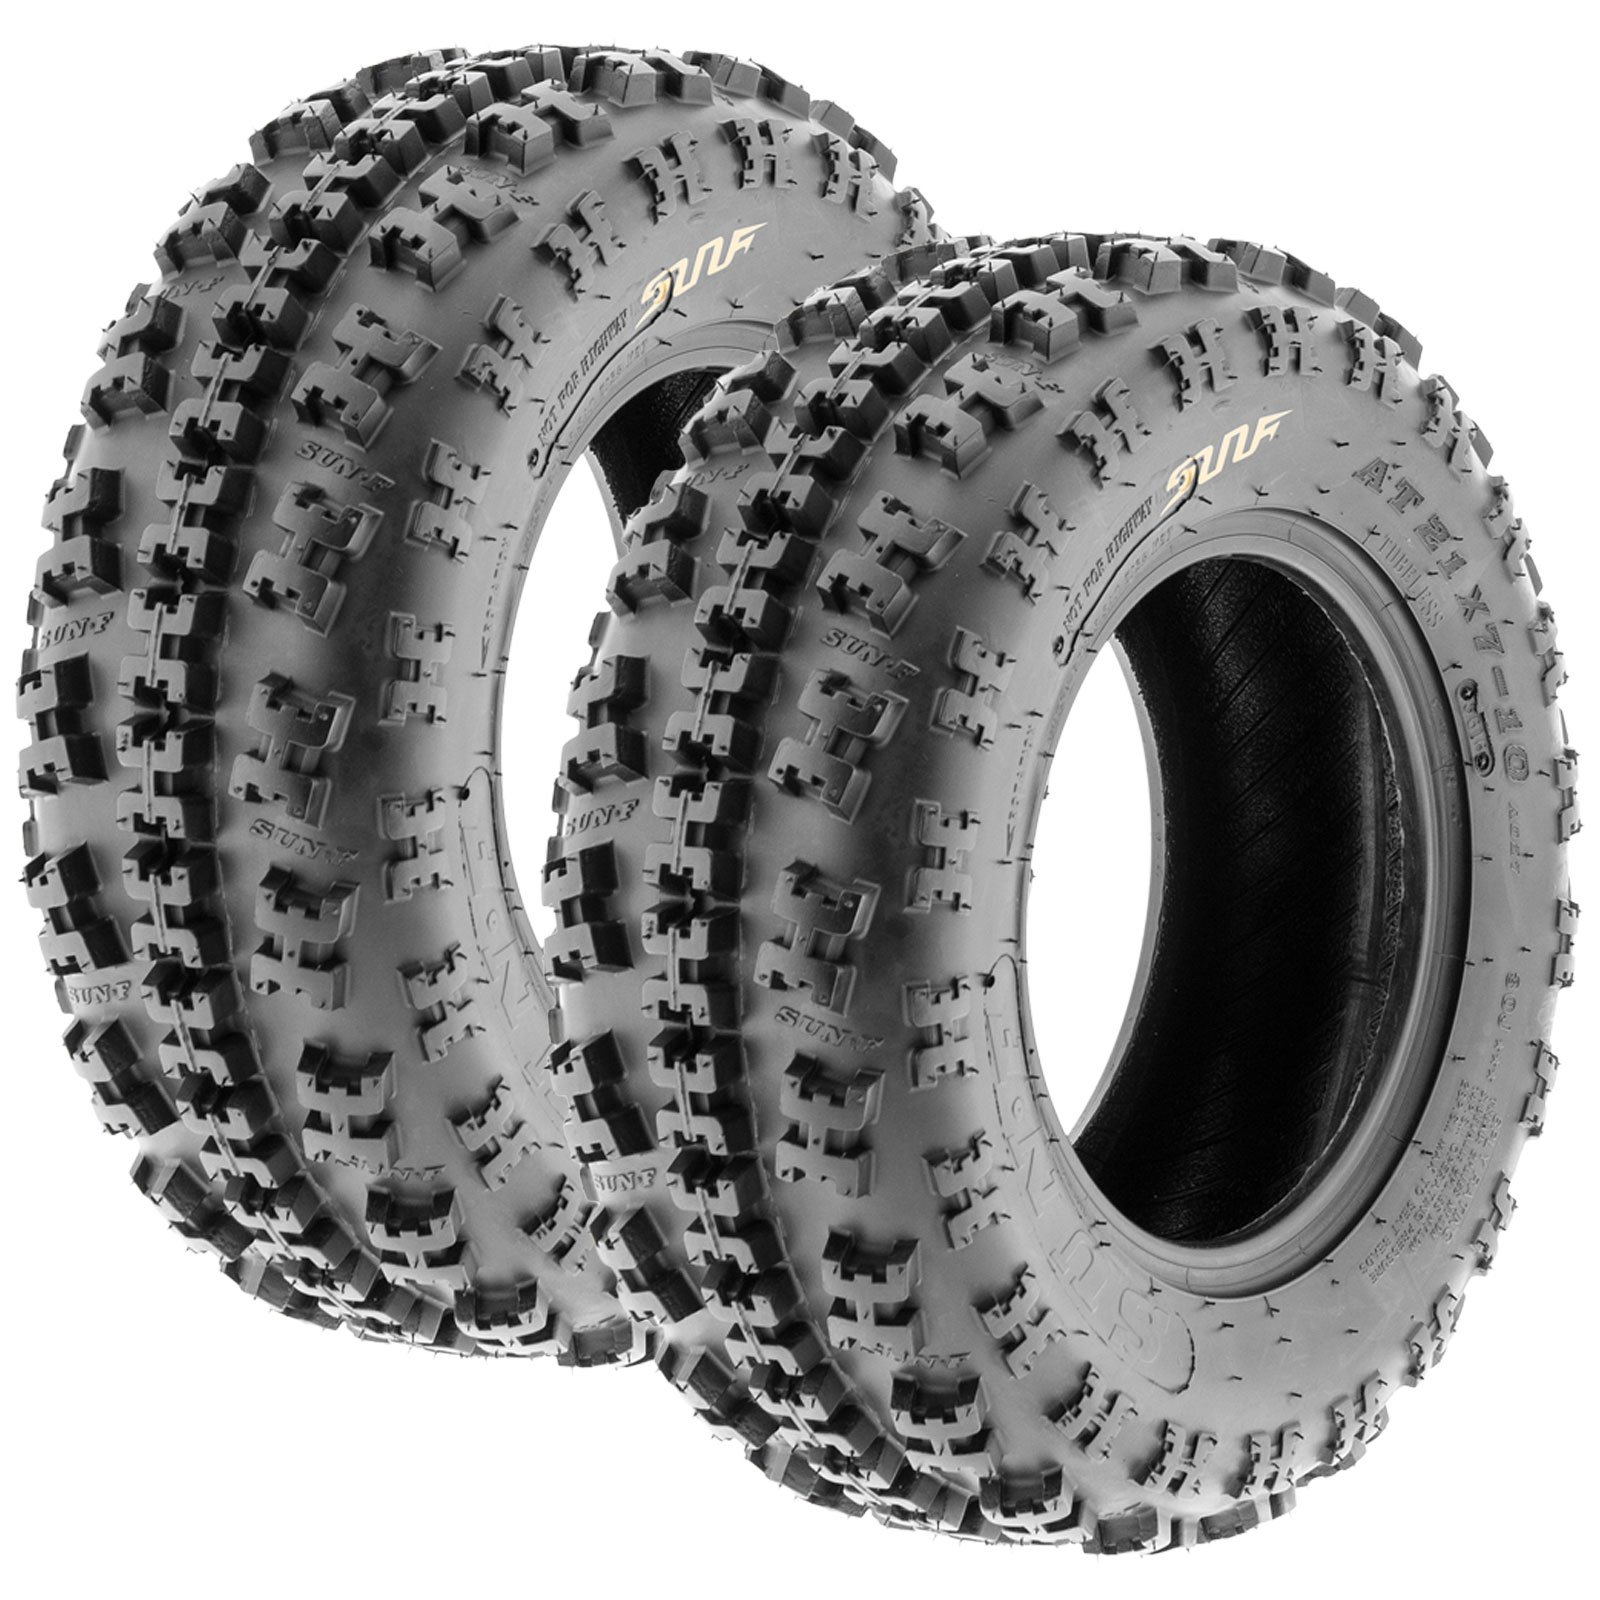 Set of 2 SunF A027 XC ATV UTV Knobby Sport Tires 21x7-10, 6 PR, Tubeless by SunF